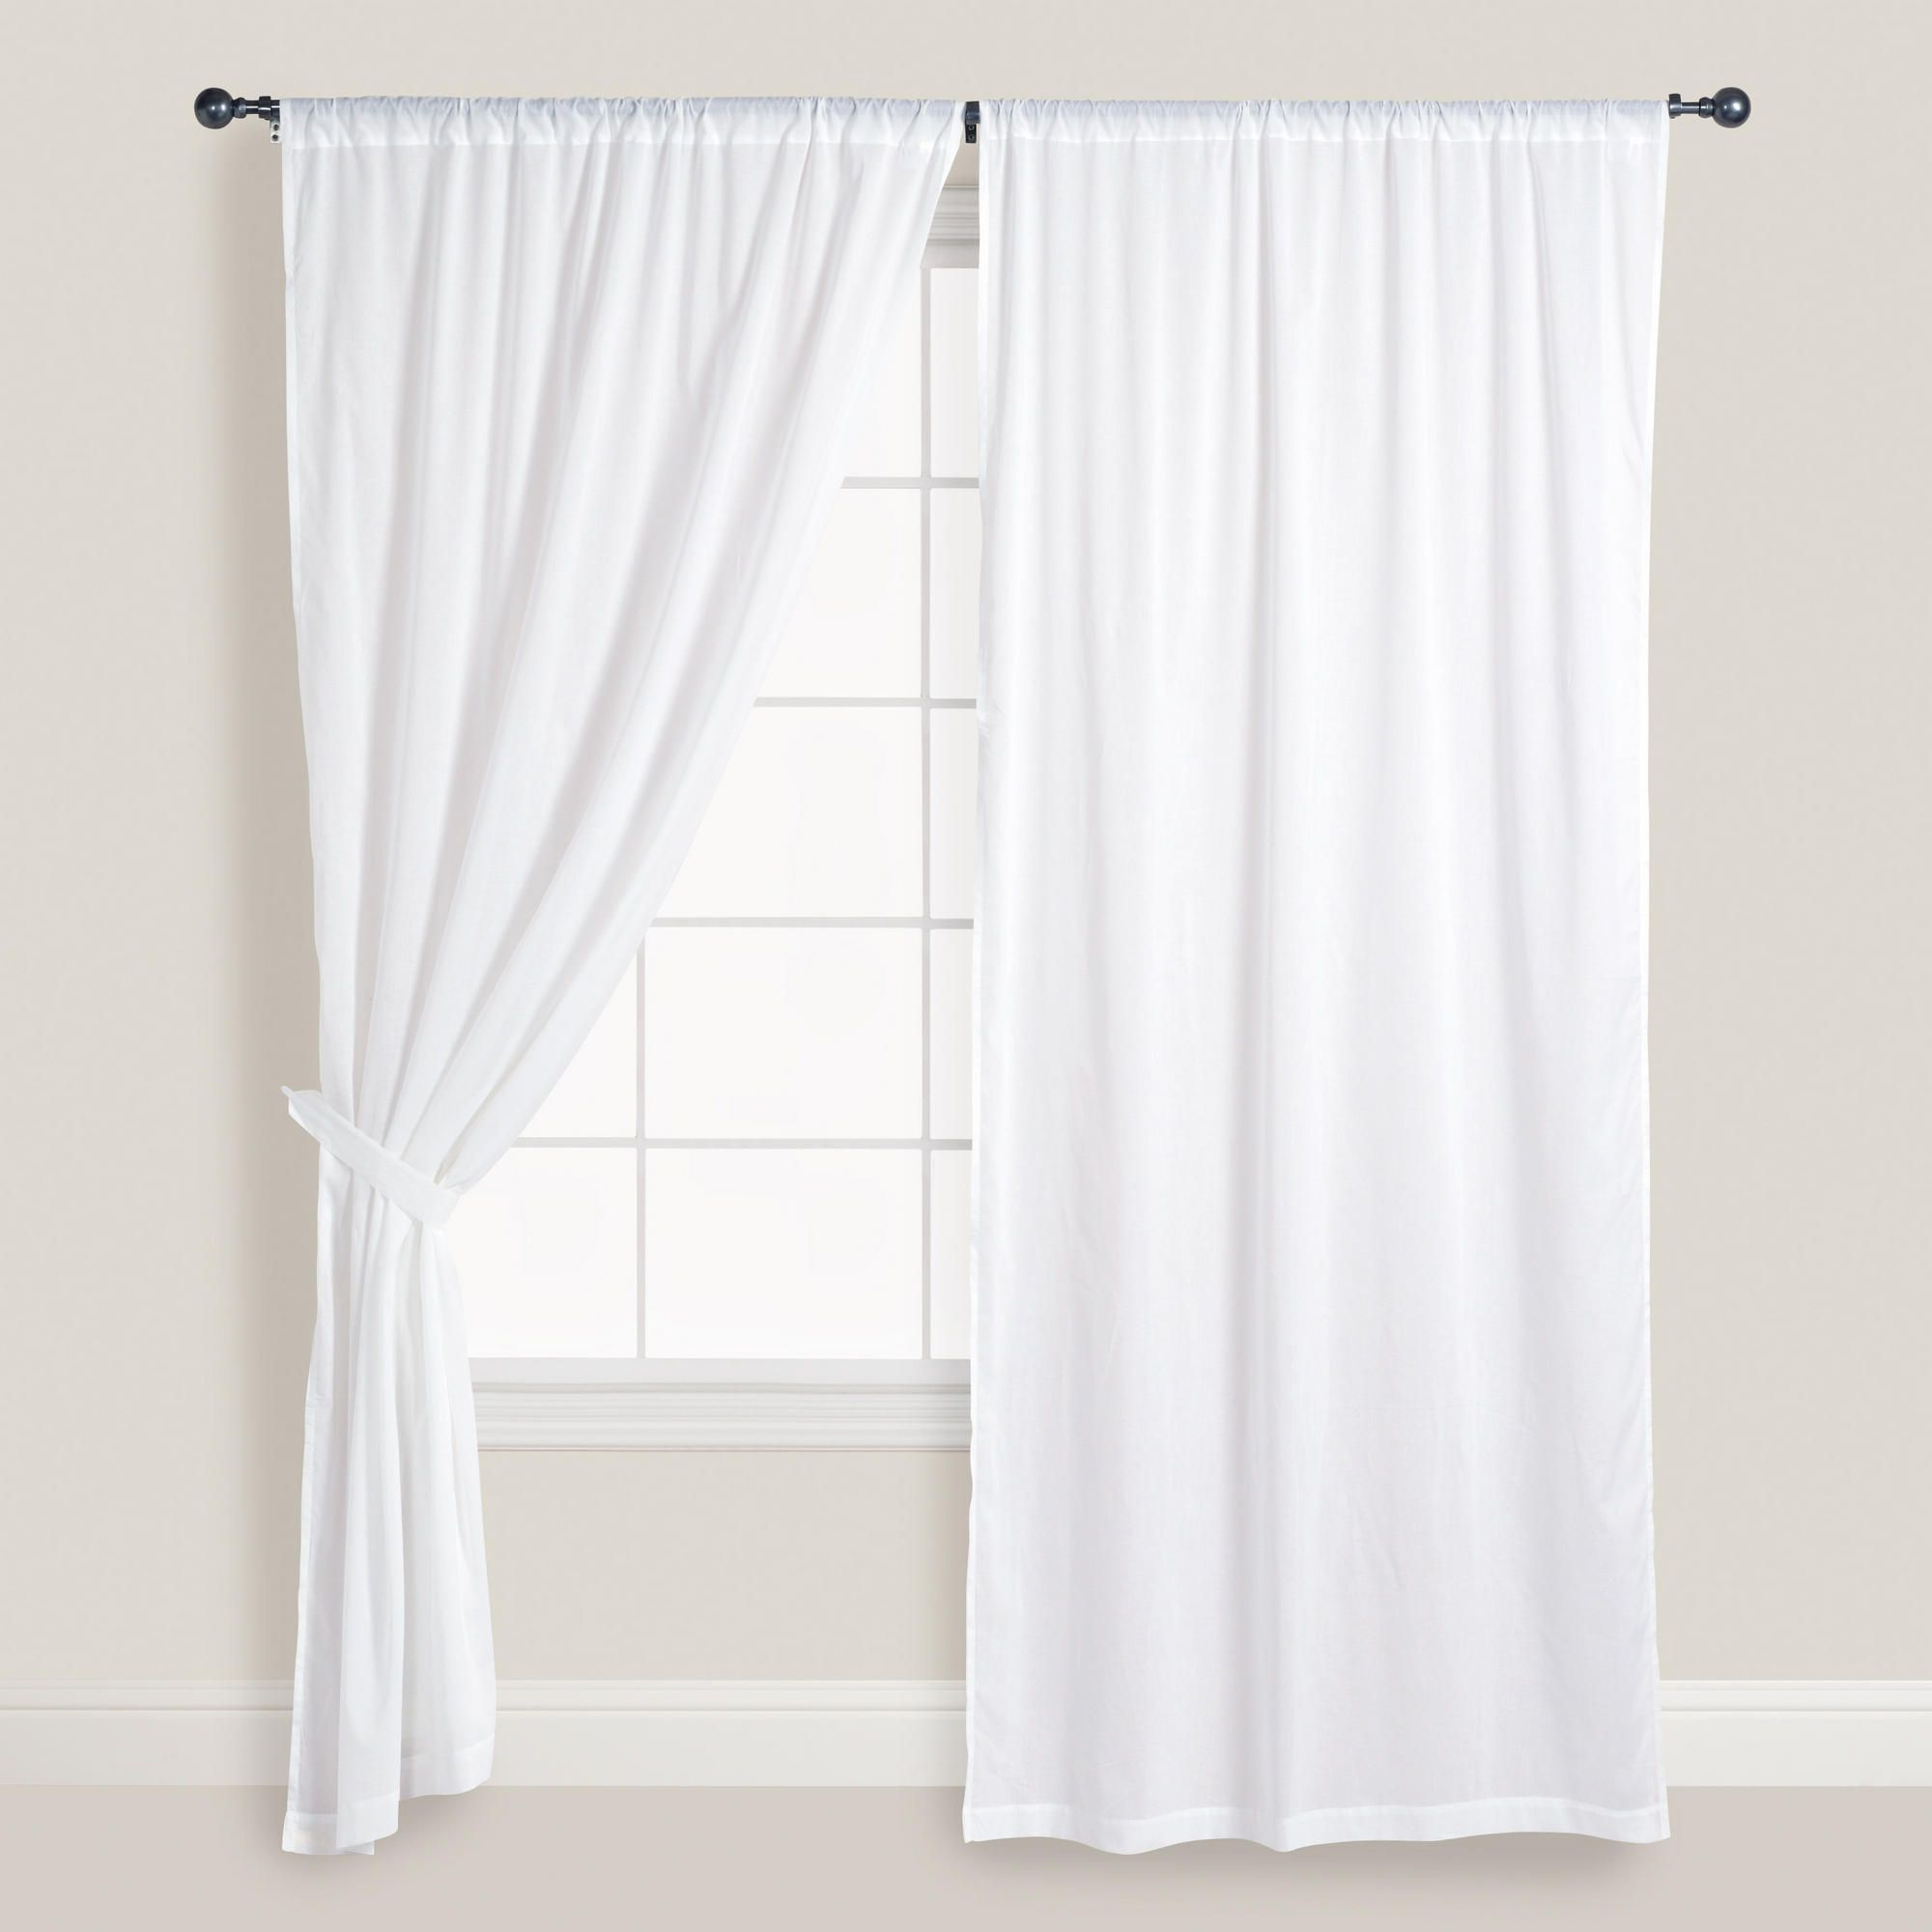 White curtains bedroom - White Cotton Voile Curtain 12 99 World Market